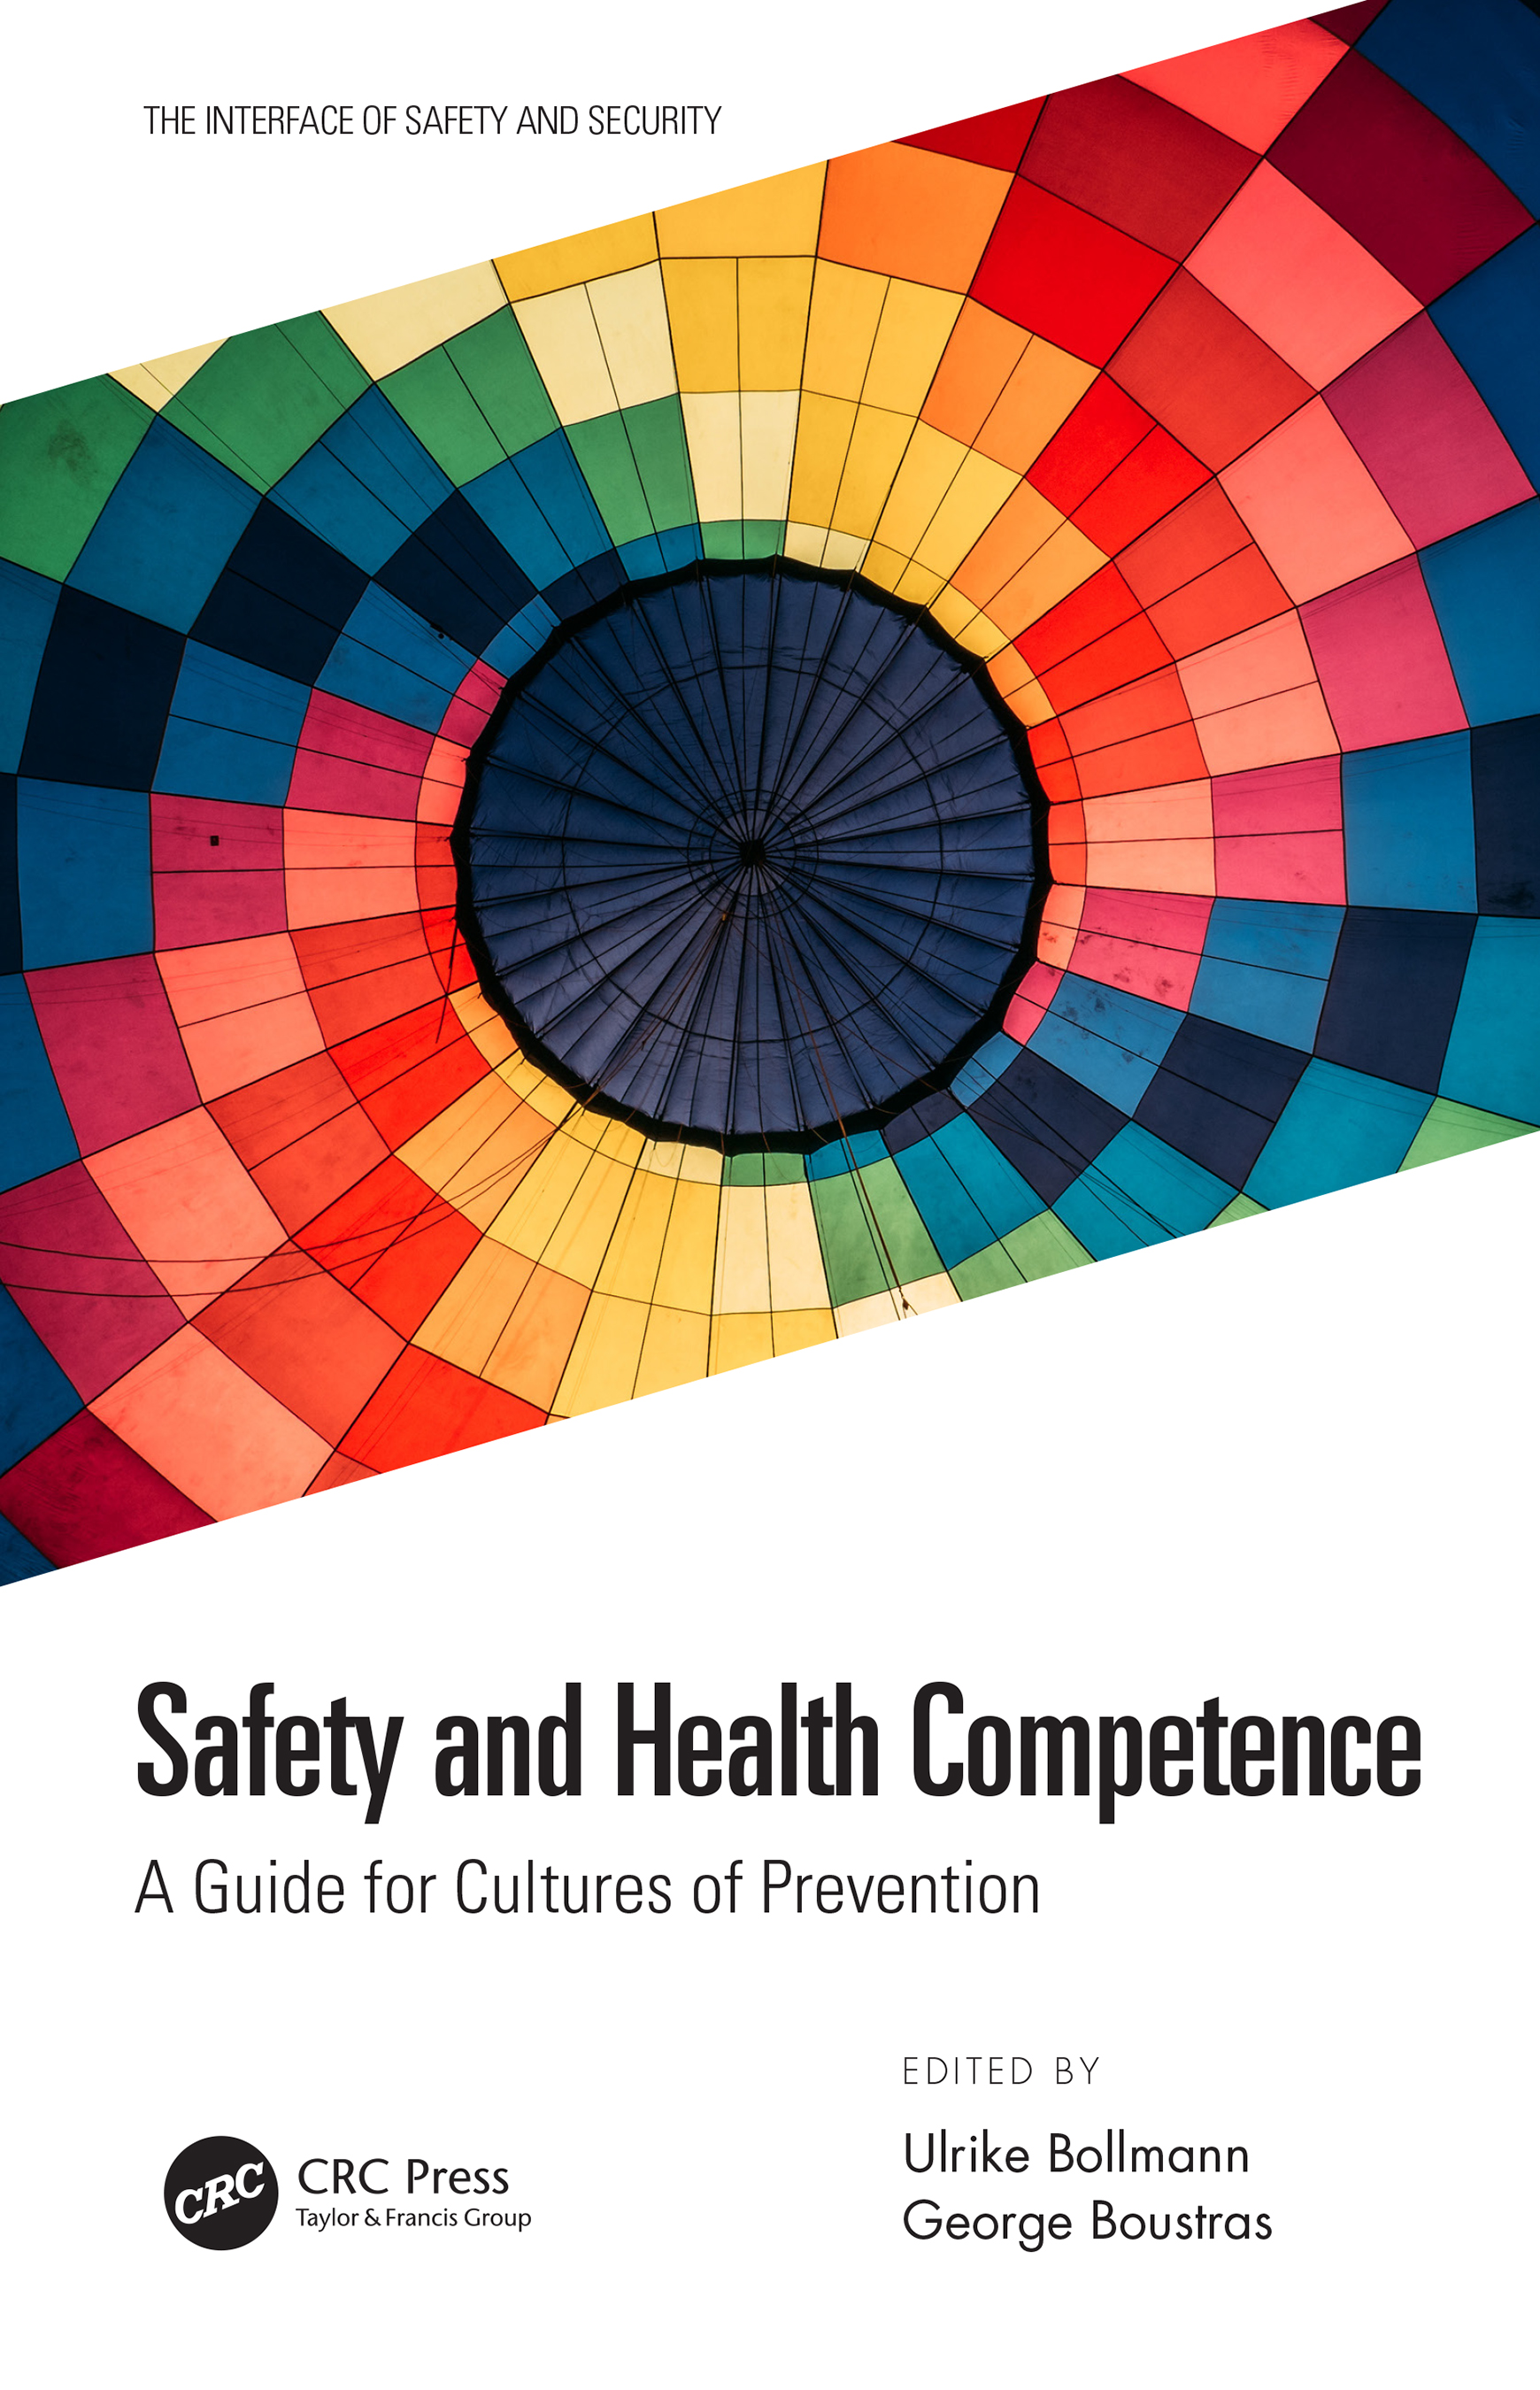 Competence ManagementBetween Command and Control, Self-Organization, and Agility